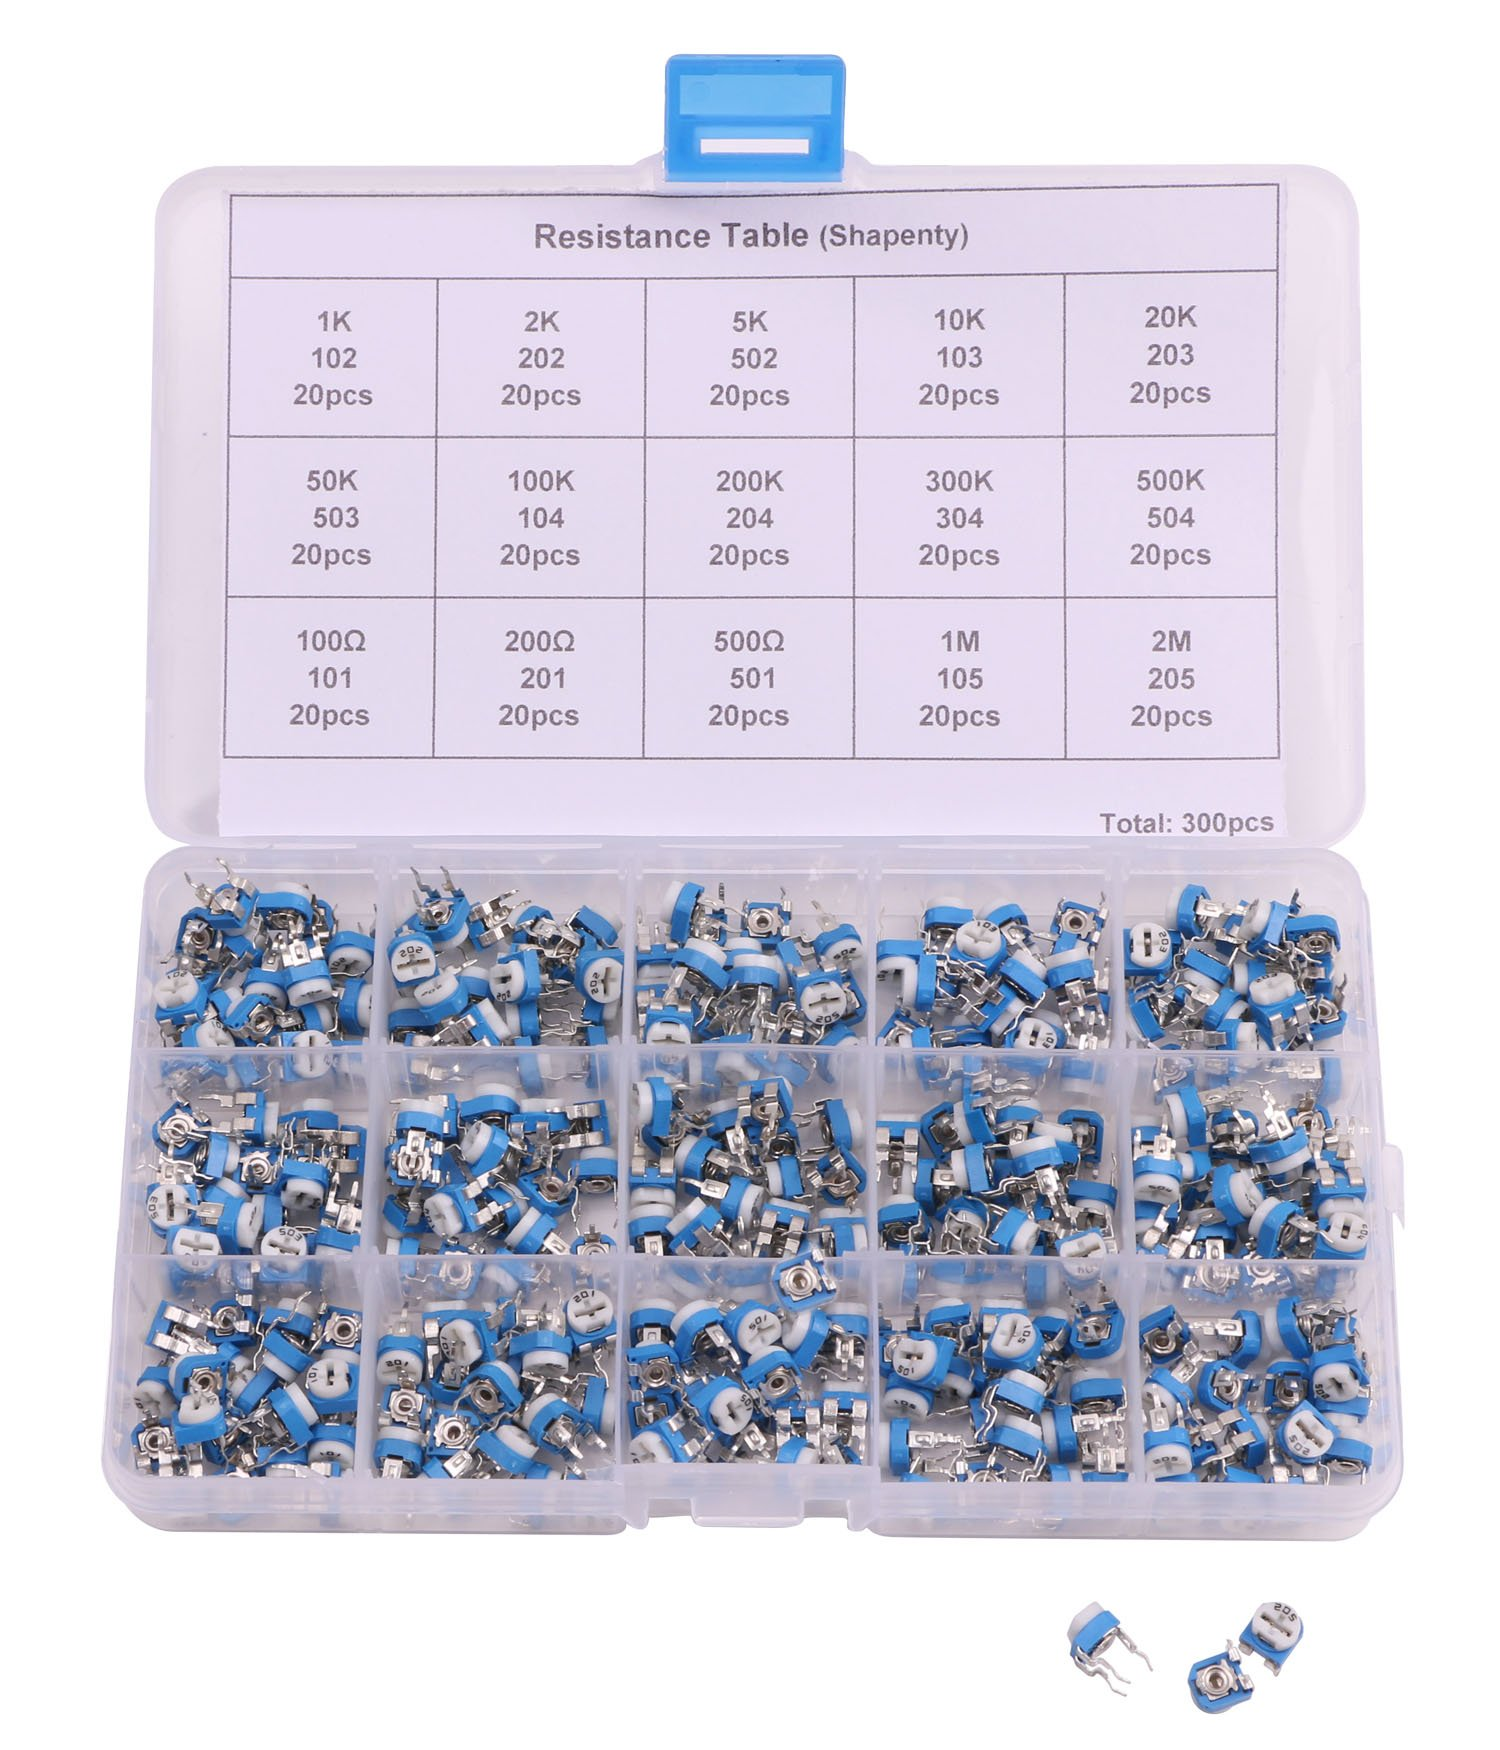 Shapenty 15 Values Blue White Horizontal Variable Resistor Adjustable Trimmer Potentiometer Trimming Trim Pot Resistor Assorted Kit, 300PCS